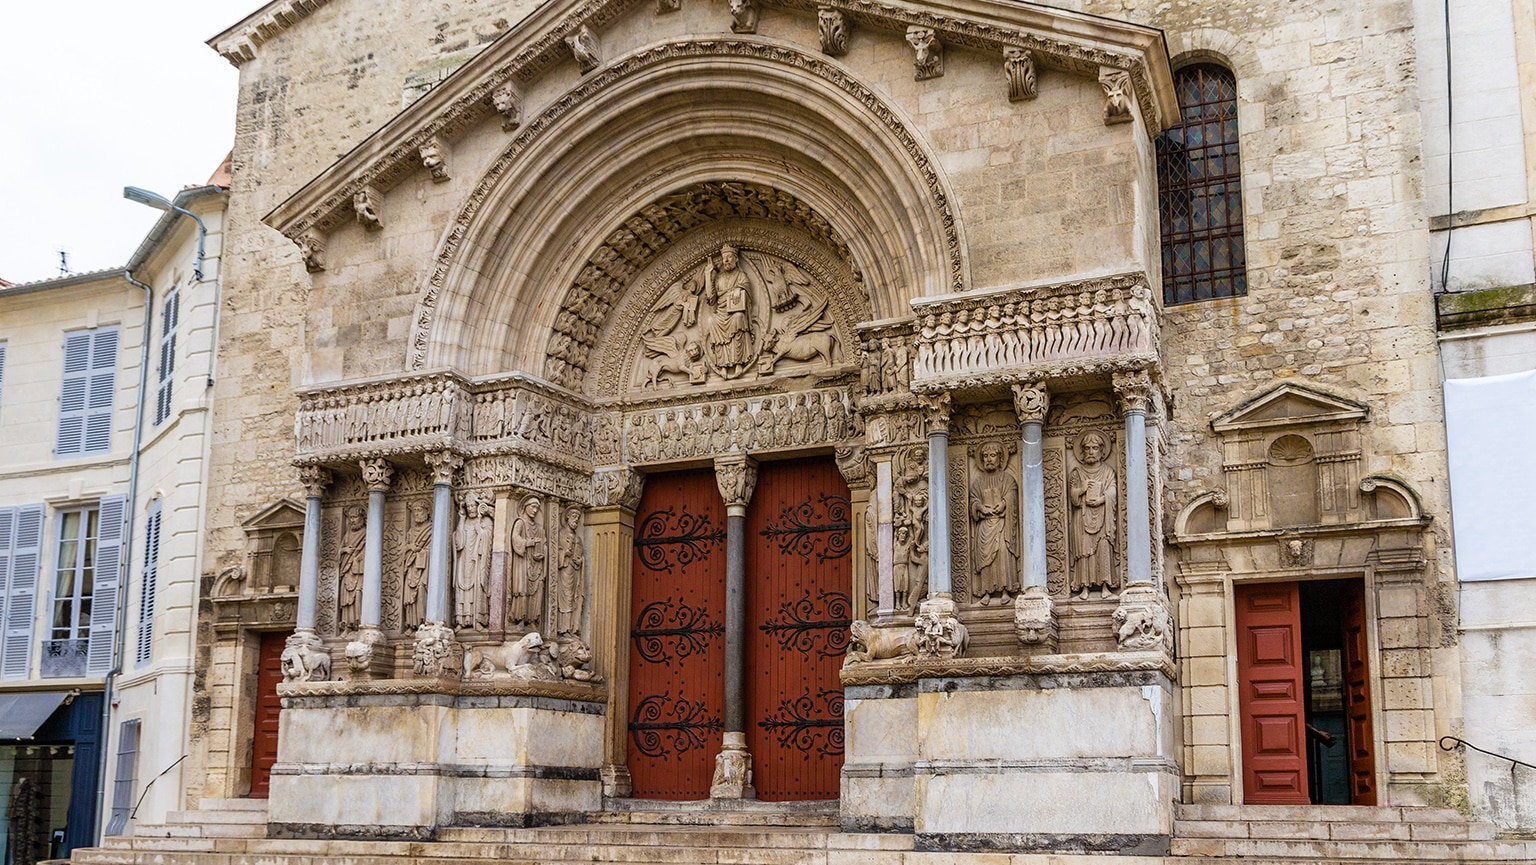 Romanesque Sculpture and Architecture